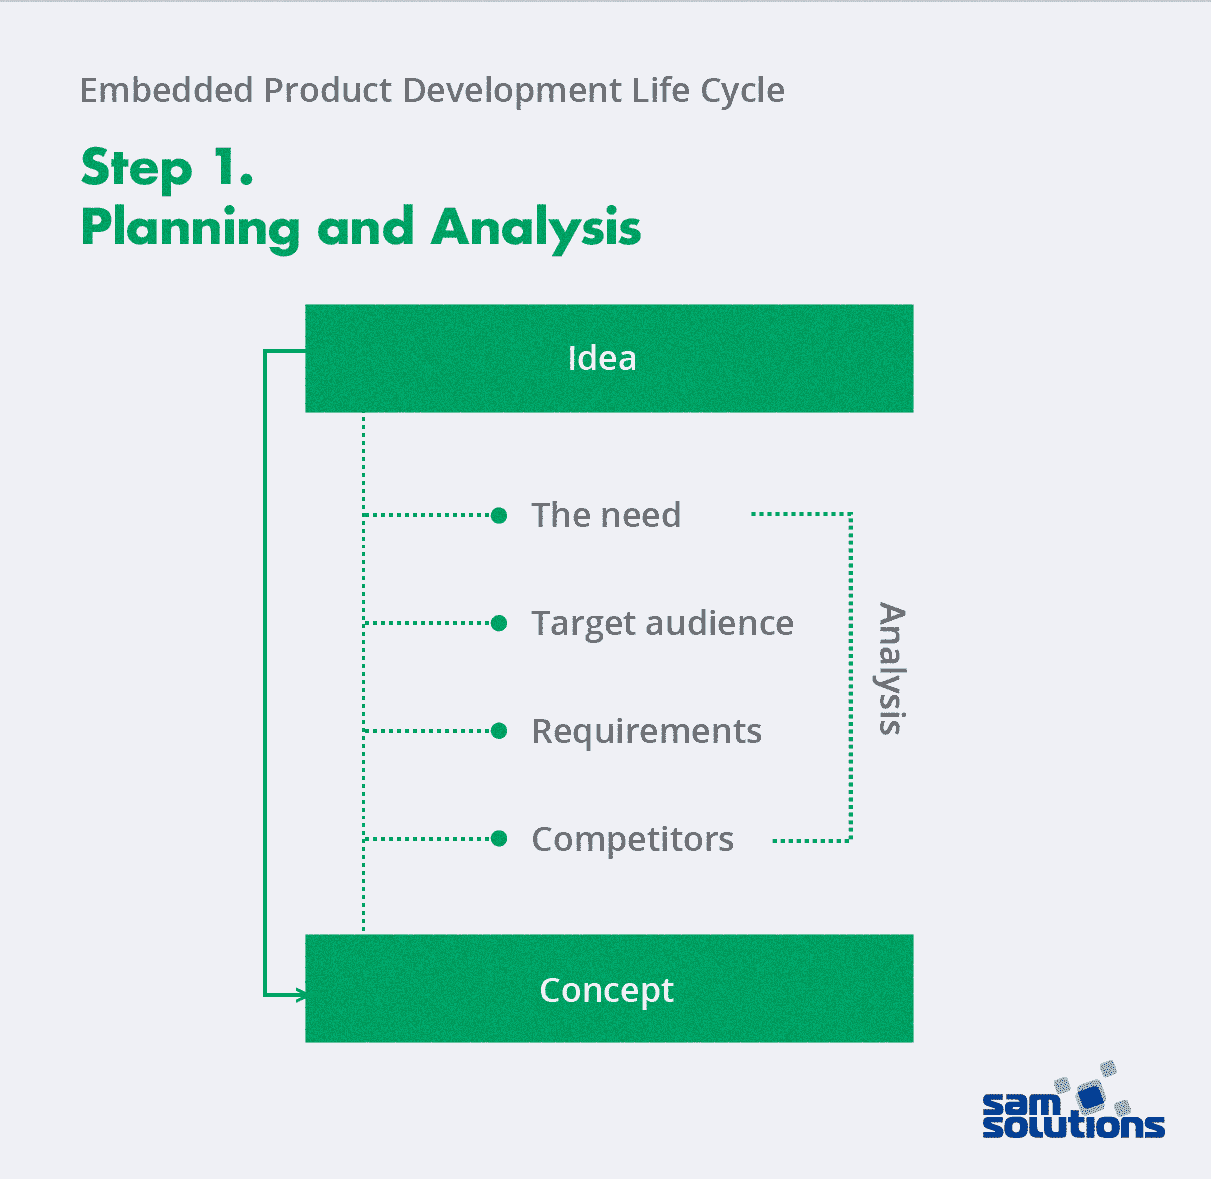 Planning and analysis